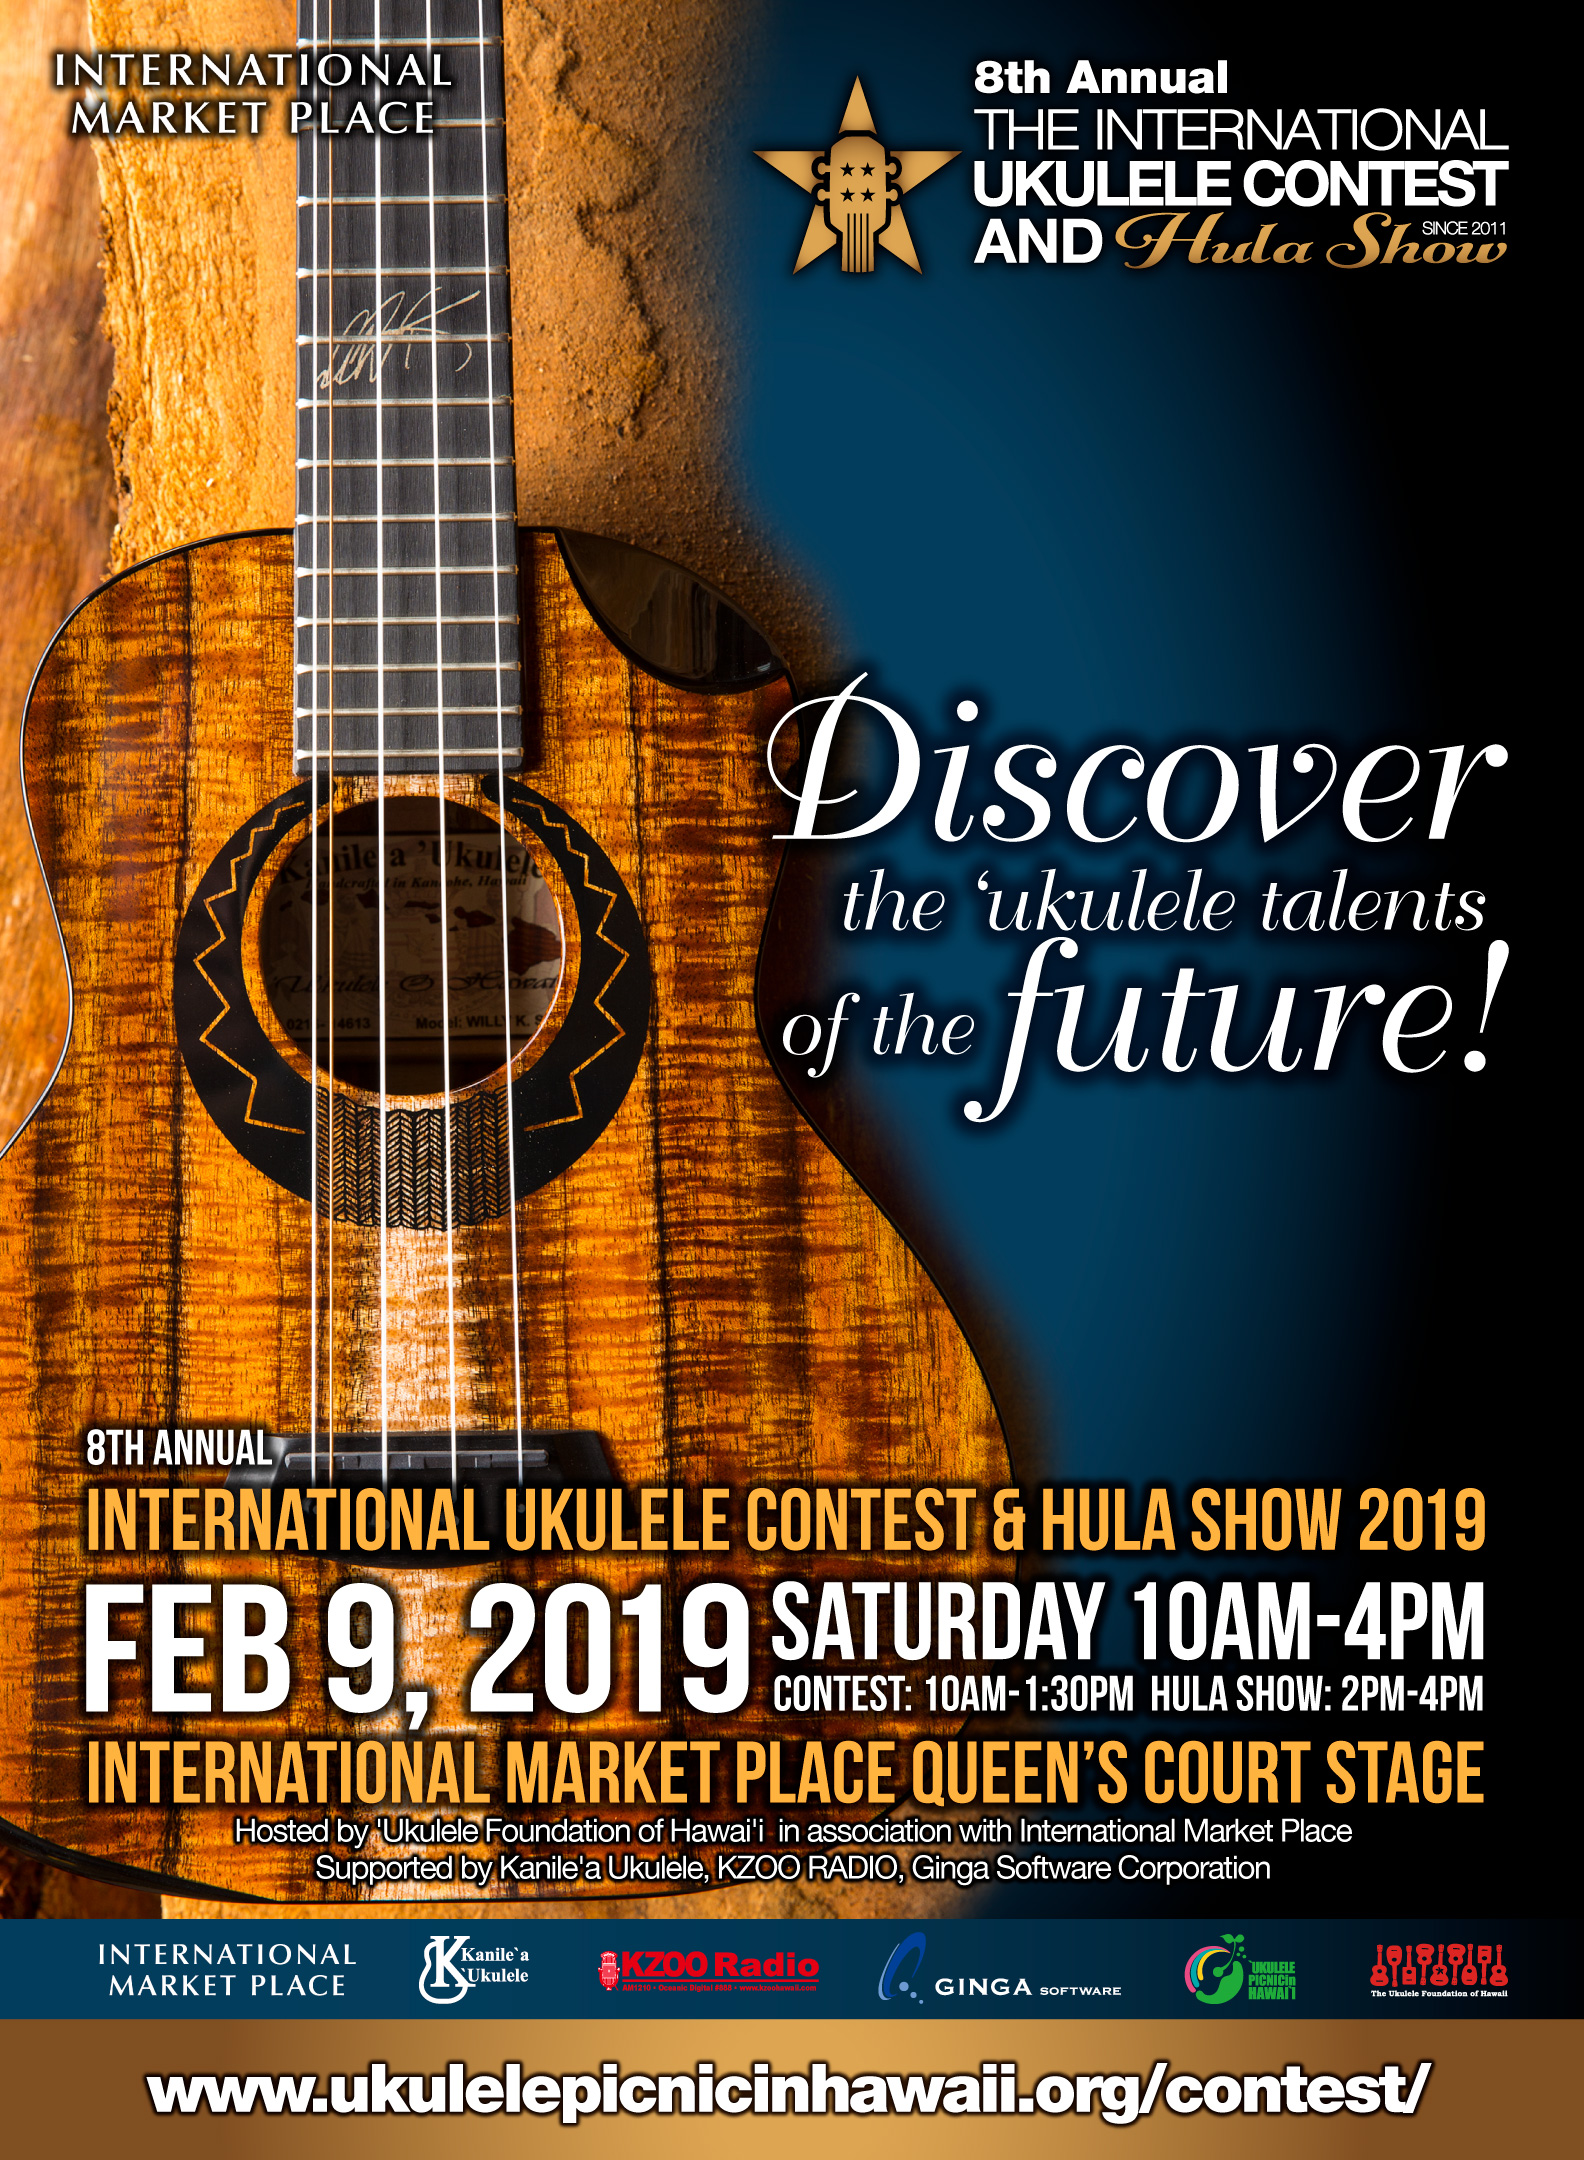 the international ukulele contest and hula show official website